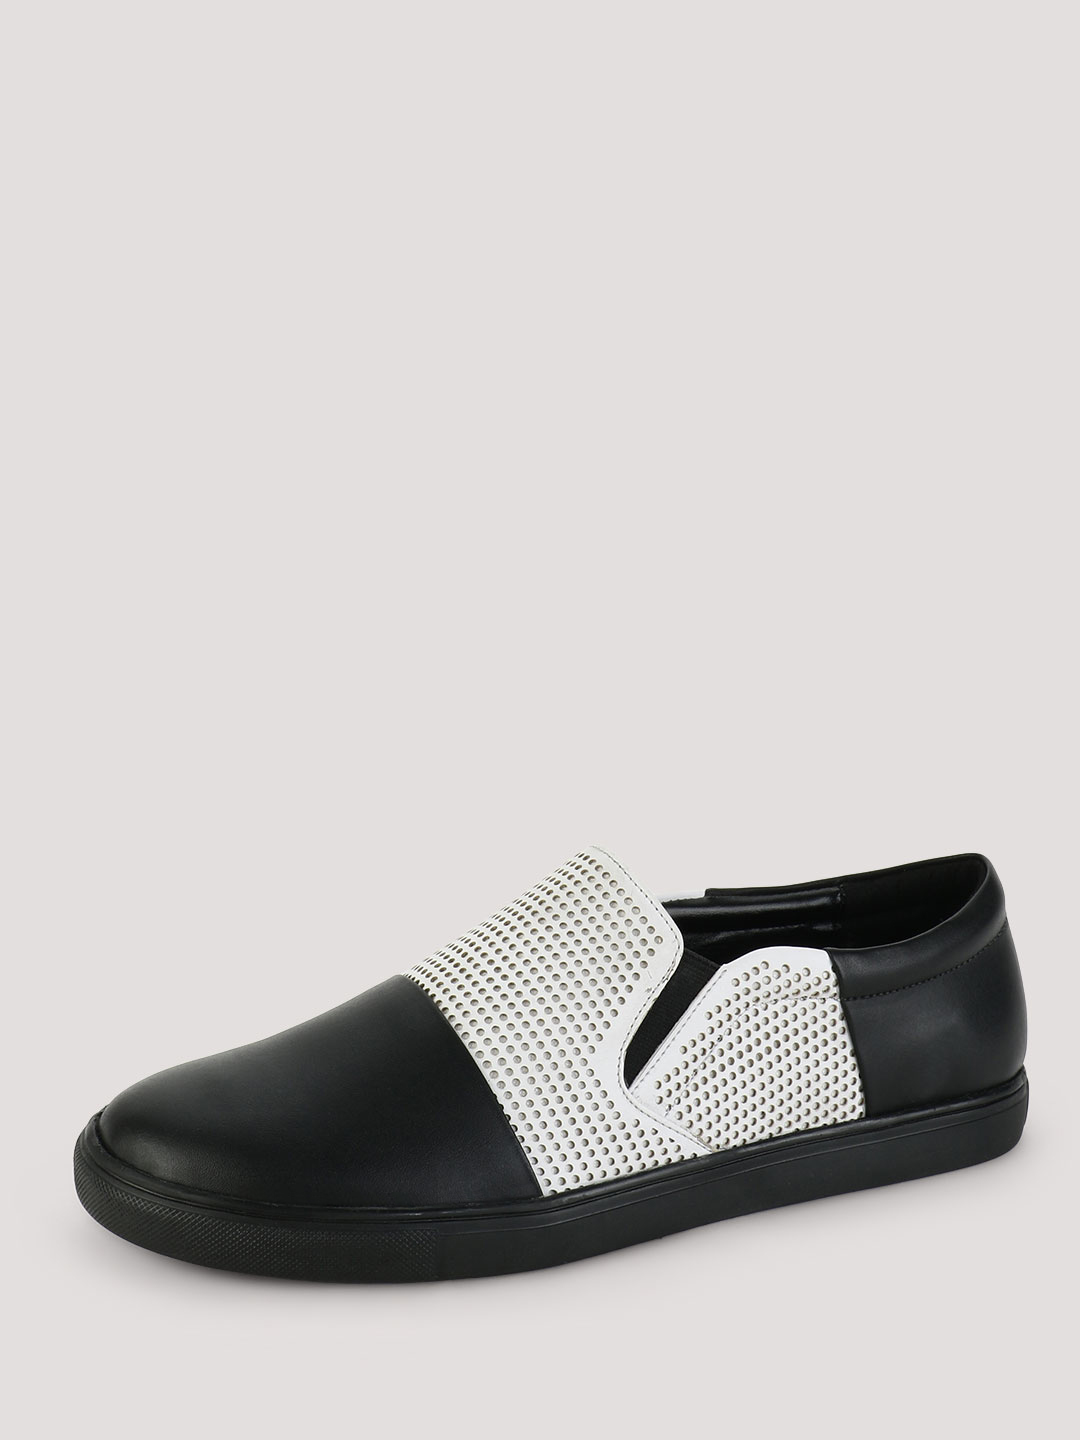 Griffin Black/White Slip-ons with Perforated Upper 1